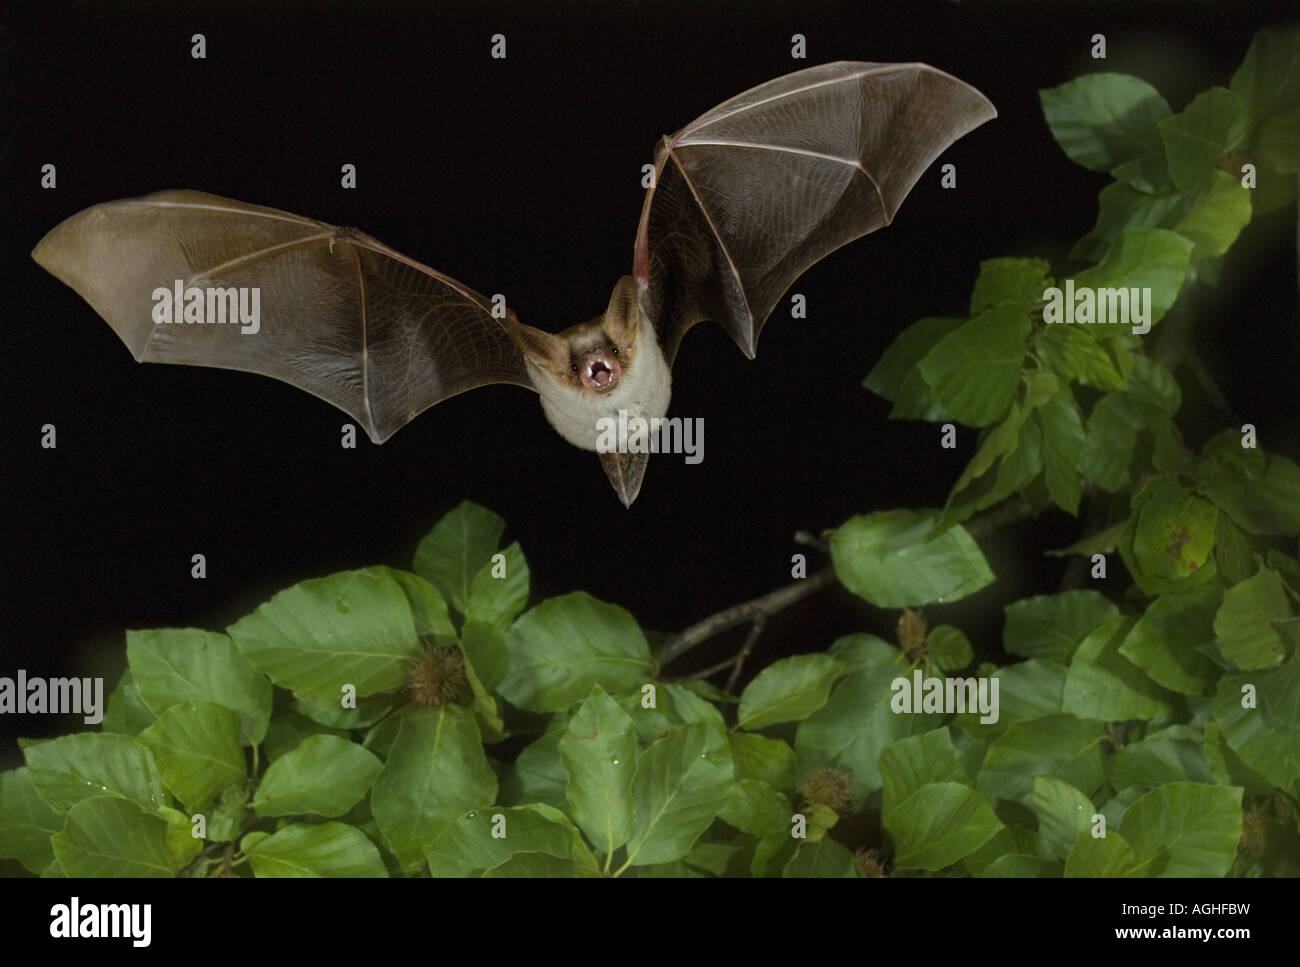 bat animal cutout stockfotos bat animal cutout bilder alamy. Black Bedroom Furniture Sets. Home Design Ideas